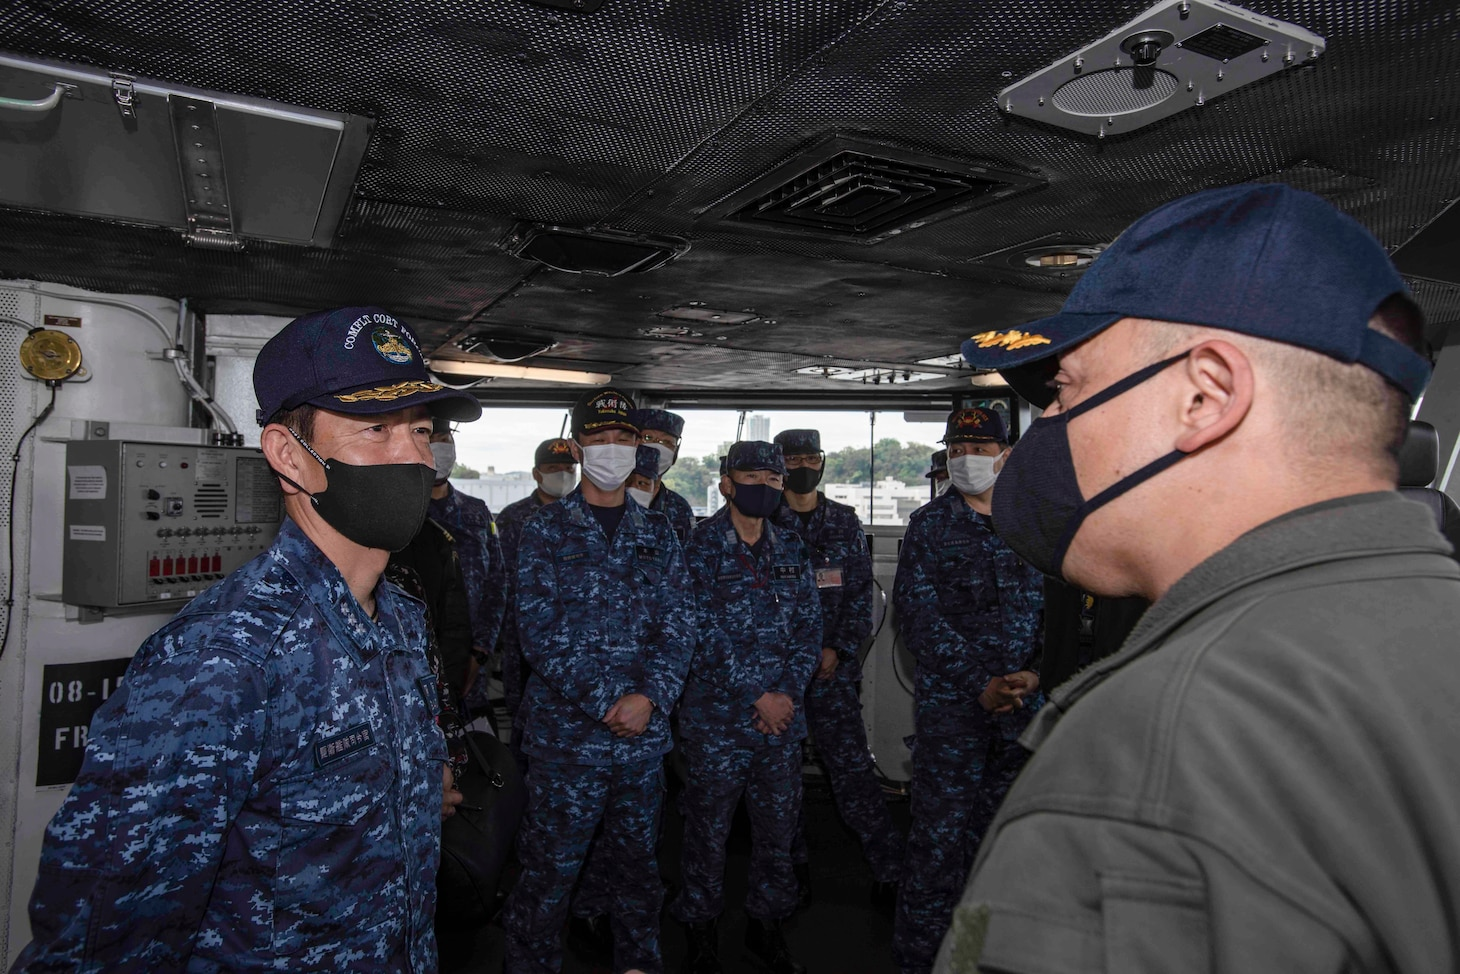 210415-N-WS494-1167 YOKOSUKA, Japan (April 15, 2021) Vice Adm. SAITO Akira, commander of Japan Maritime Self-Defense Force (JMSDF) Fleet Escort Force, receives a tour of the pilot house from Capt. Fred Goldhammer, commanding officer of the U.S. Navy's only forward deployed aircraft carrier USS Ronald Reagan (CVN 76). Leadership from the 7th Fleet task forces that command Carrier Strike Group (CSG) 5 and Task Force 71 met with the commander of JMSDF Fleet Escort Force aboard Ronald Reagan for a ship tour and staff discussions. Ronald Reagan, the flagship of CSG 5, provides a combat-ready force that protects and defends the United States, as well as the collective maritime interests of its allies and partners in the Indo-Pacific region. (U.S. Navy Photo by Mass Communication Specialist 3rd Class Quinton A. Lee)